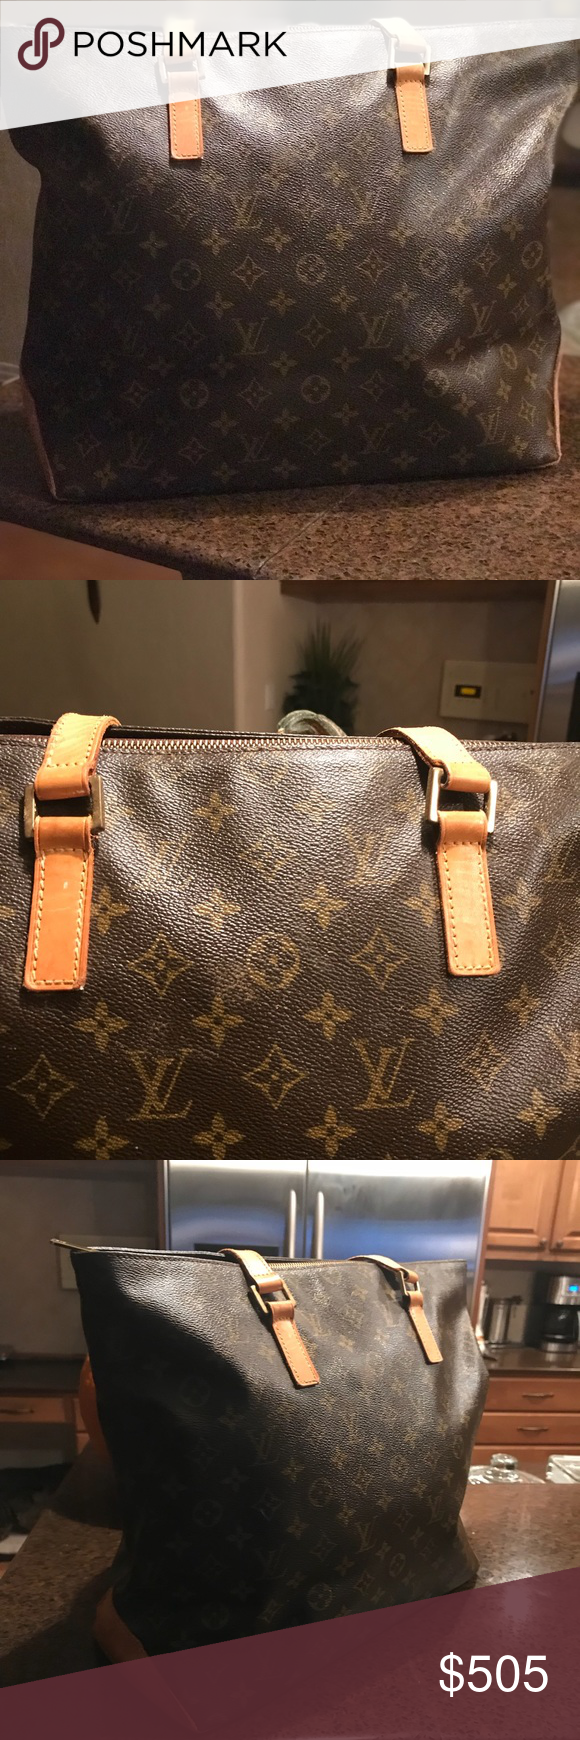 721fdfc8 Beautiful Vintage Louis Vuitton Large Mezzo Tote Vintage Item ...